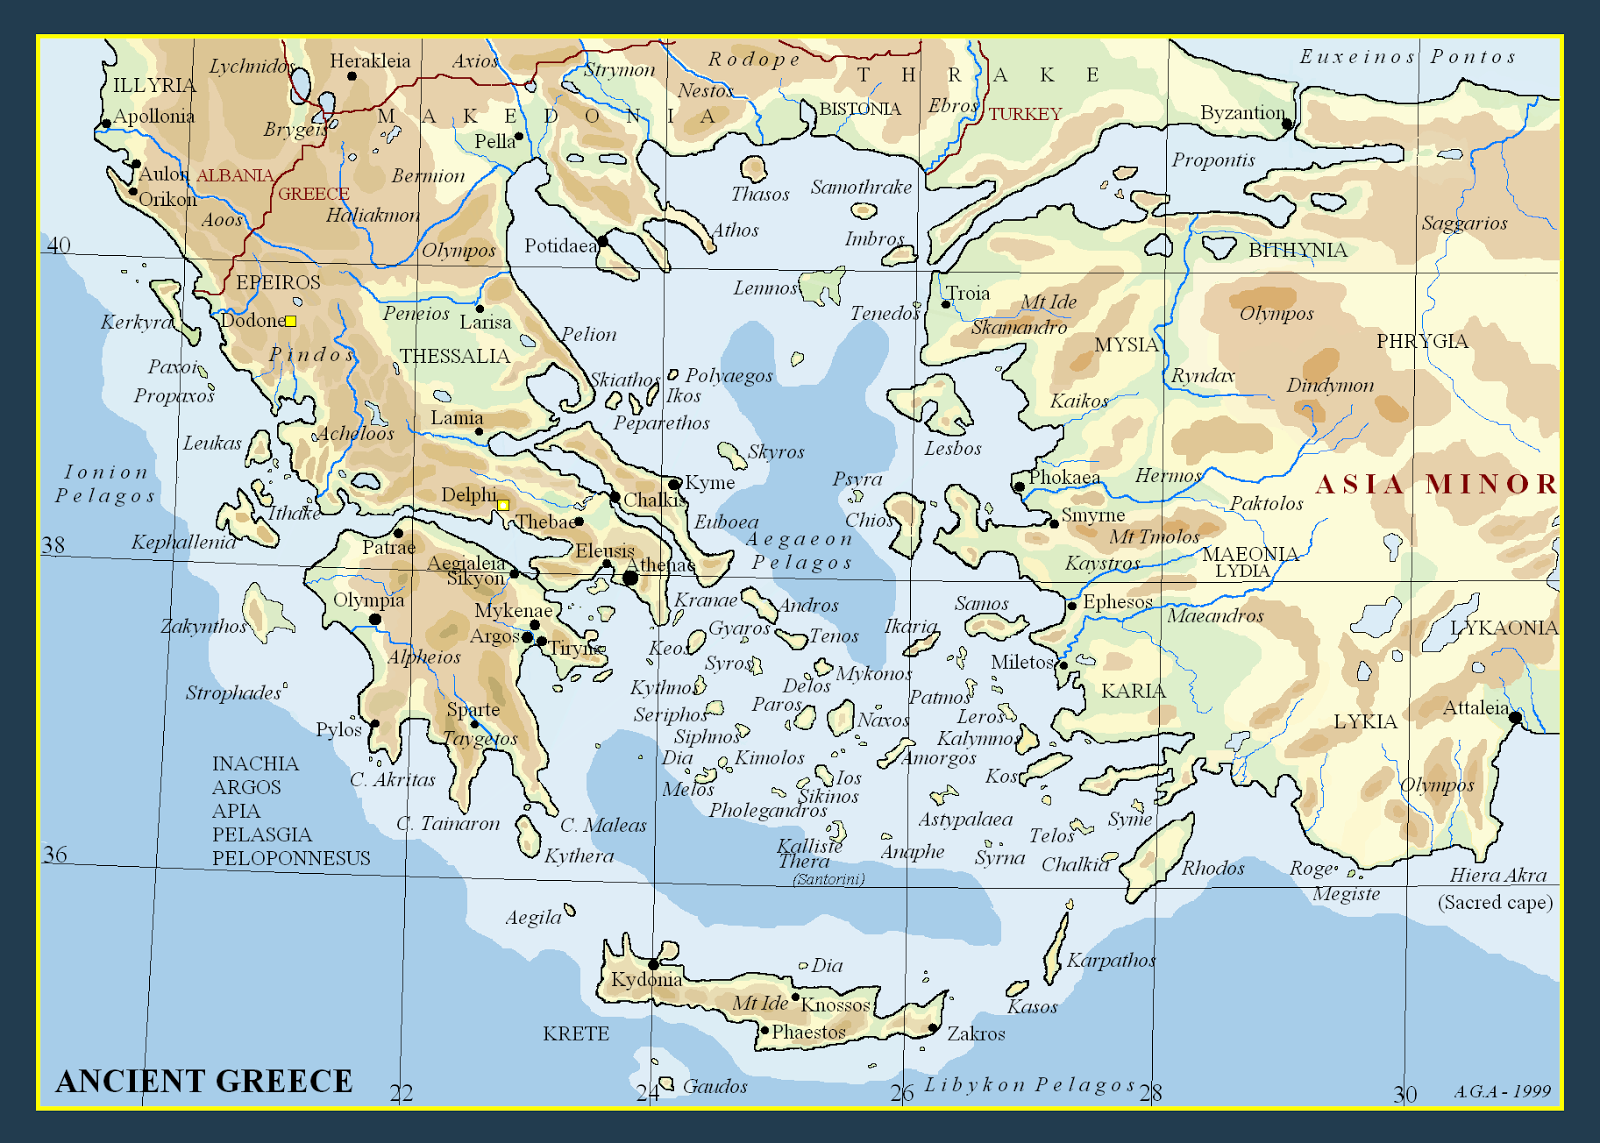 Ancient Greece Map With Cities.Metron Ariston Maps Of Ancient Greece